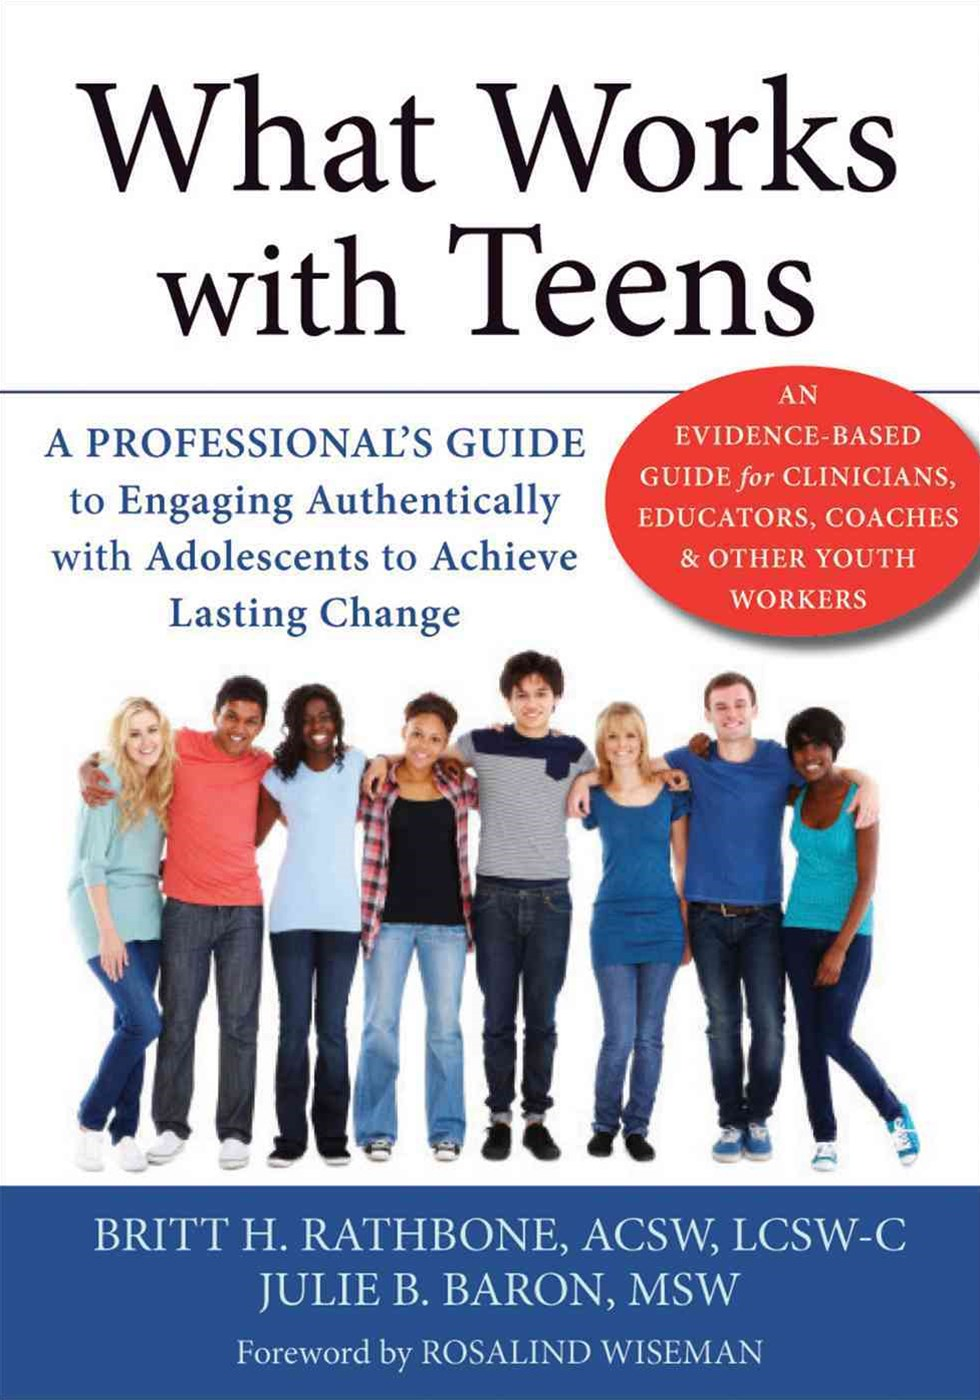 What Works with Teens